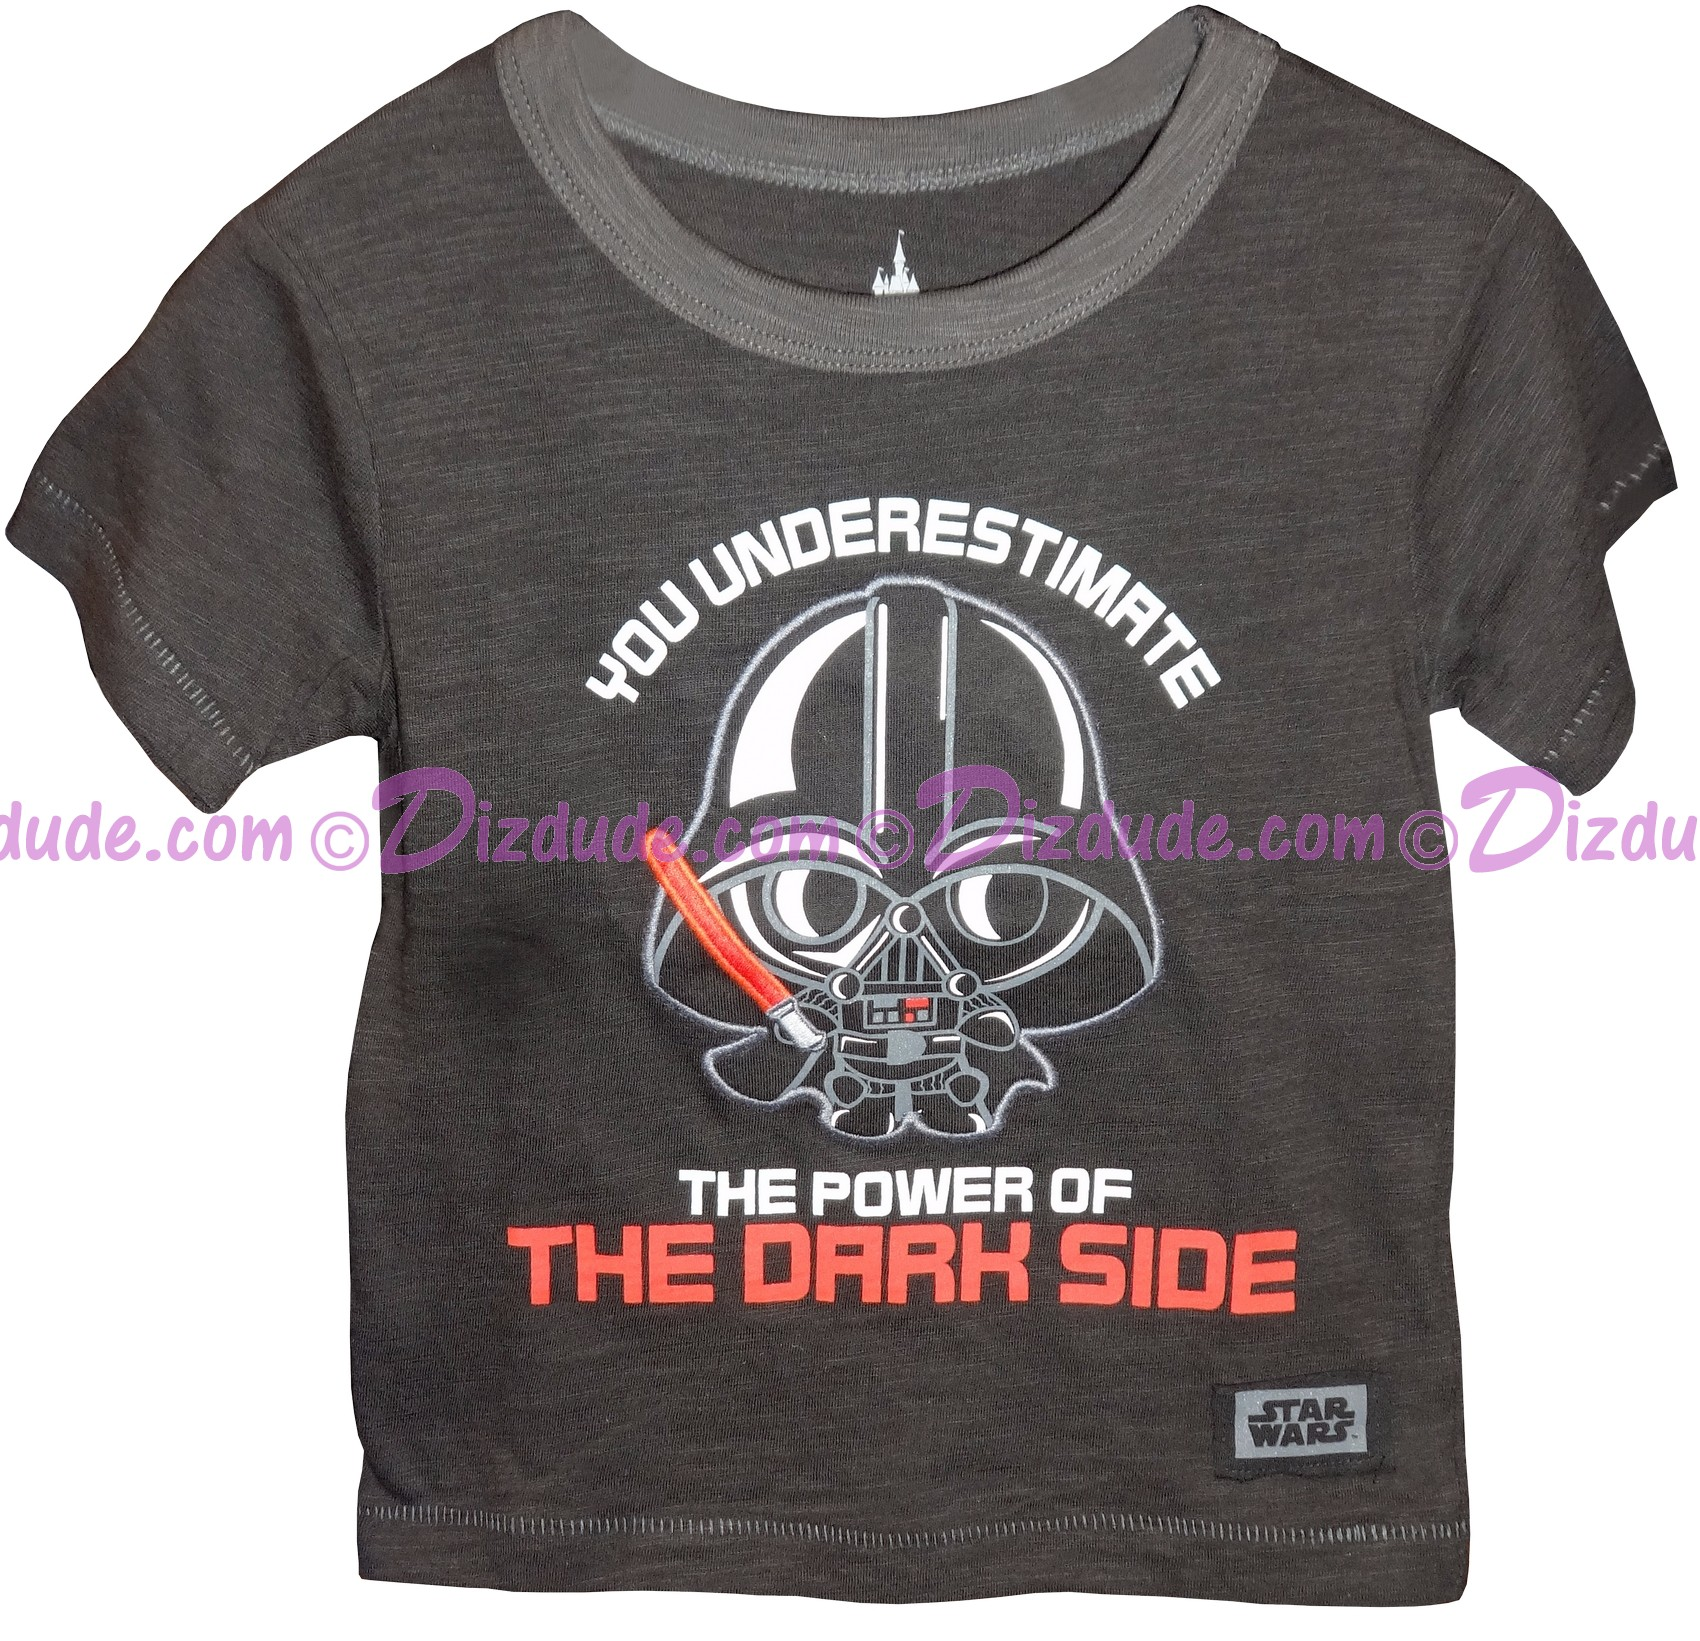 "Disney Star Wars ""You Underestimate The Power Of The Dark Side"" Darth Vader Toddler T-Shirt © Dizdude.com"